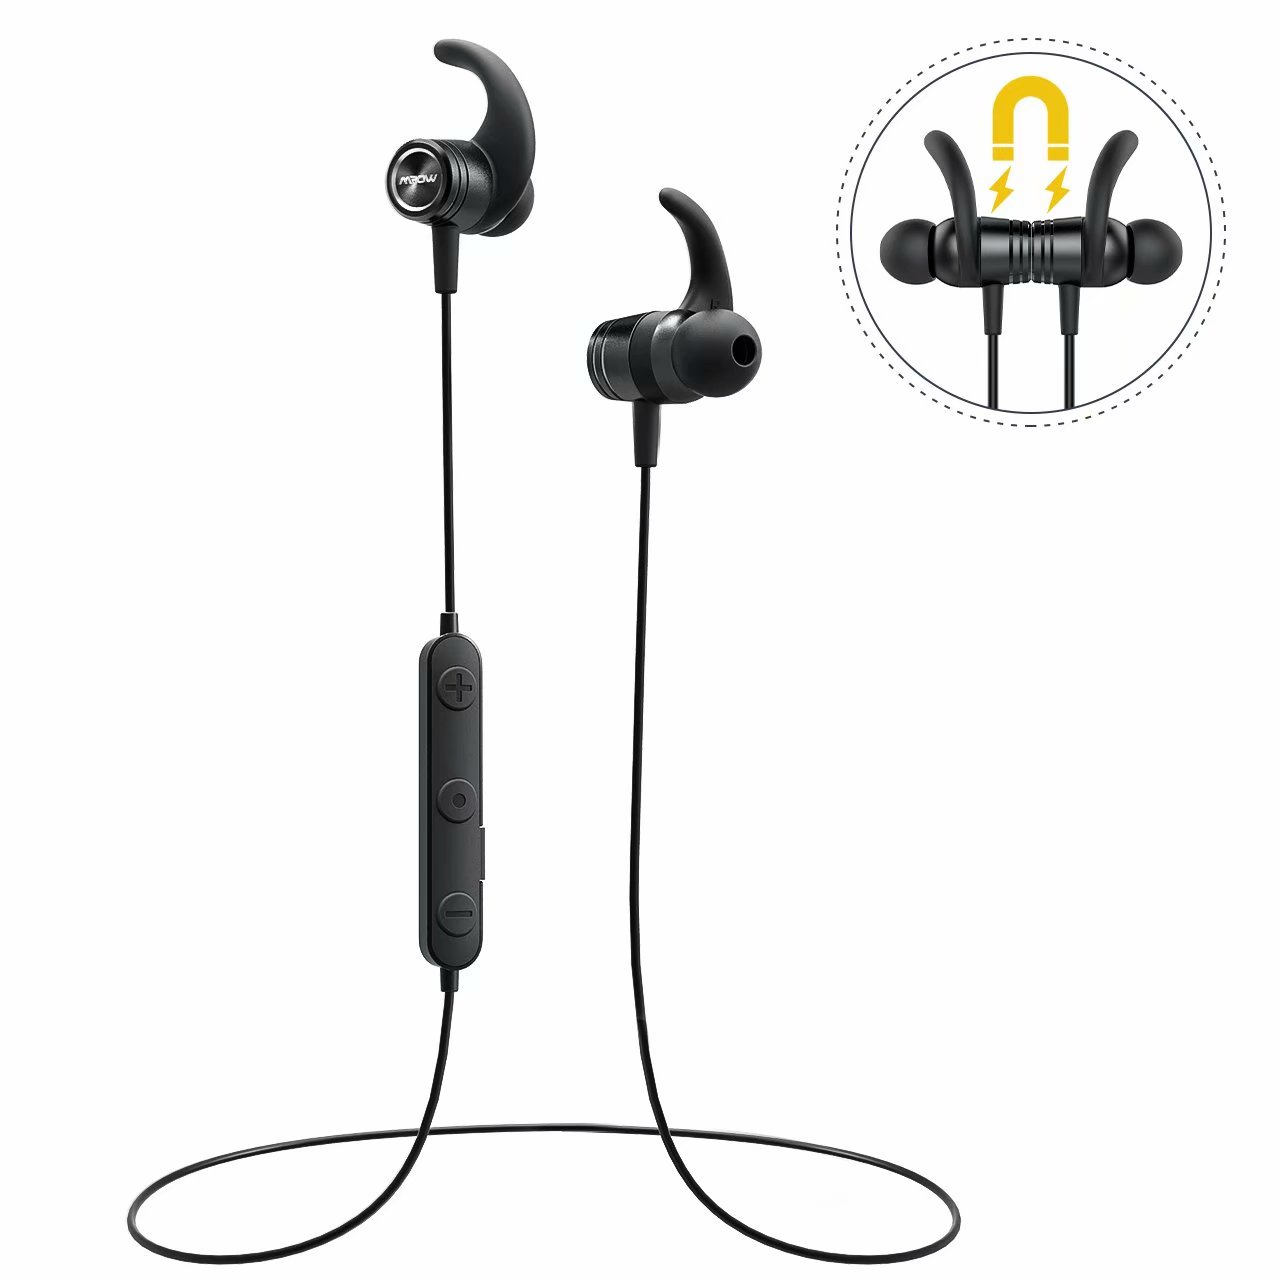 56621452626 Mpow S10 Bluetooth Headphones, IPX7 Waterproof Hi-Fidelity Audio Sports  Earbuds, Magnetic Lightweight Running Earphones w/Mic, 8 Hours Playtime  Wireless ...